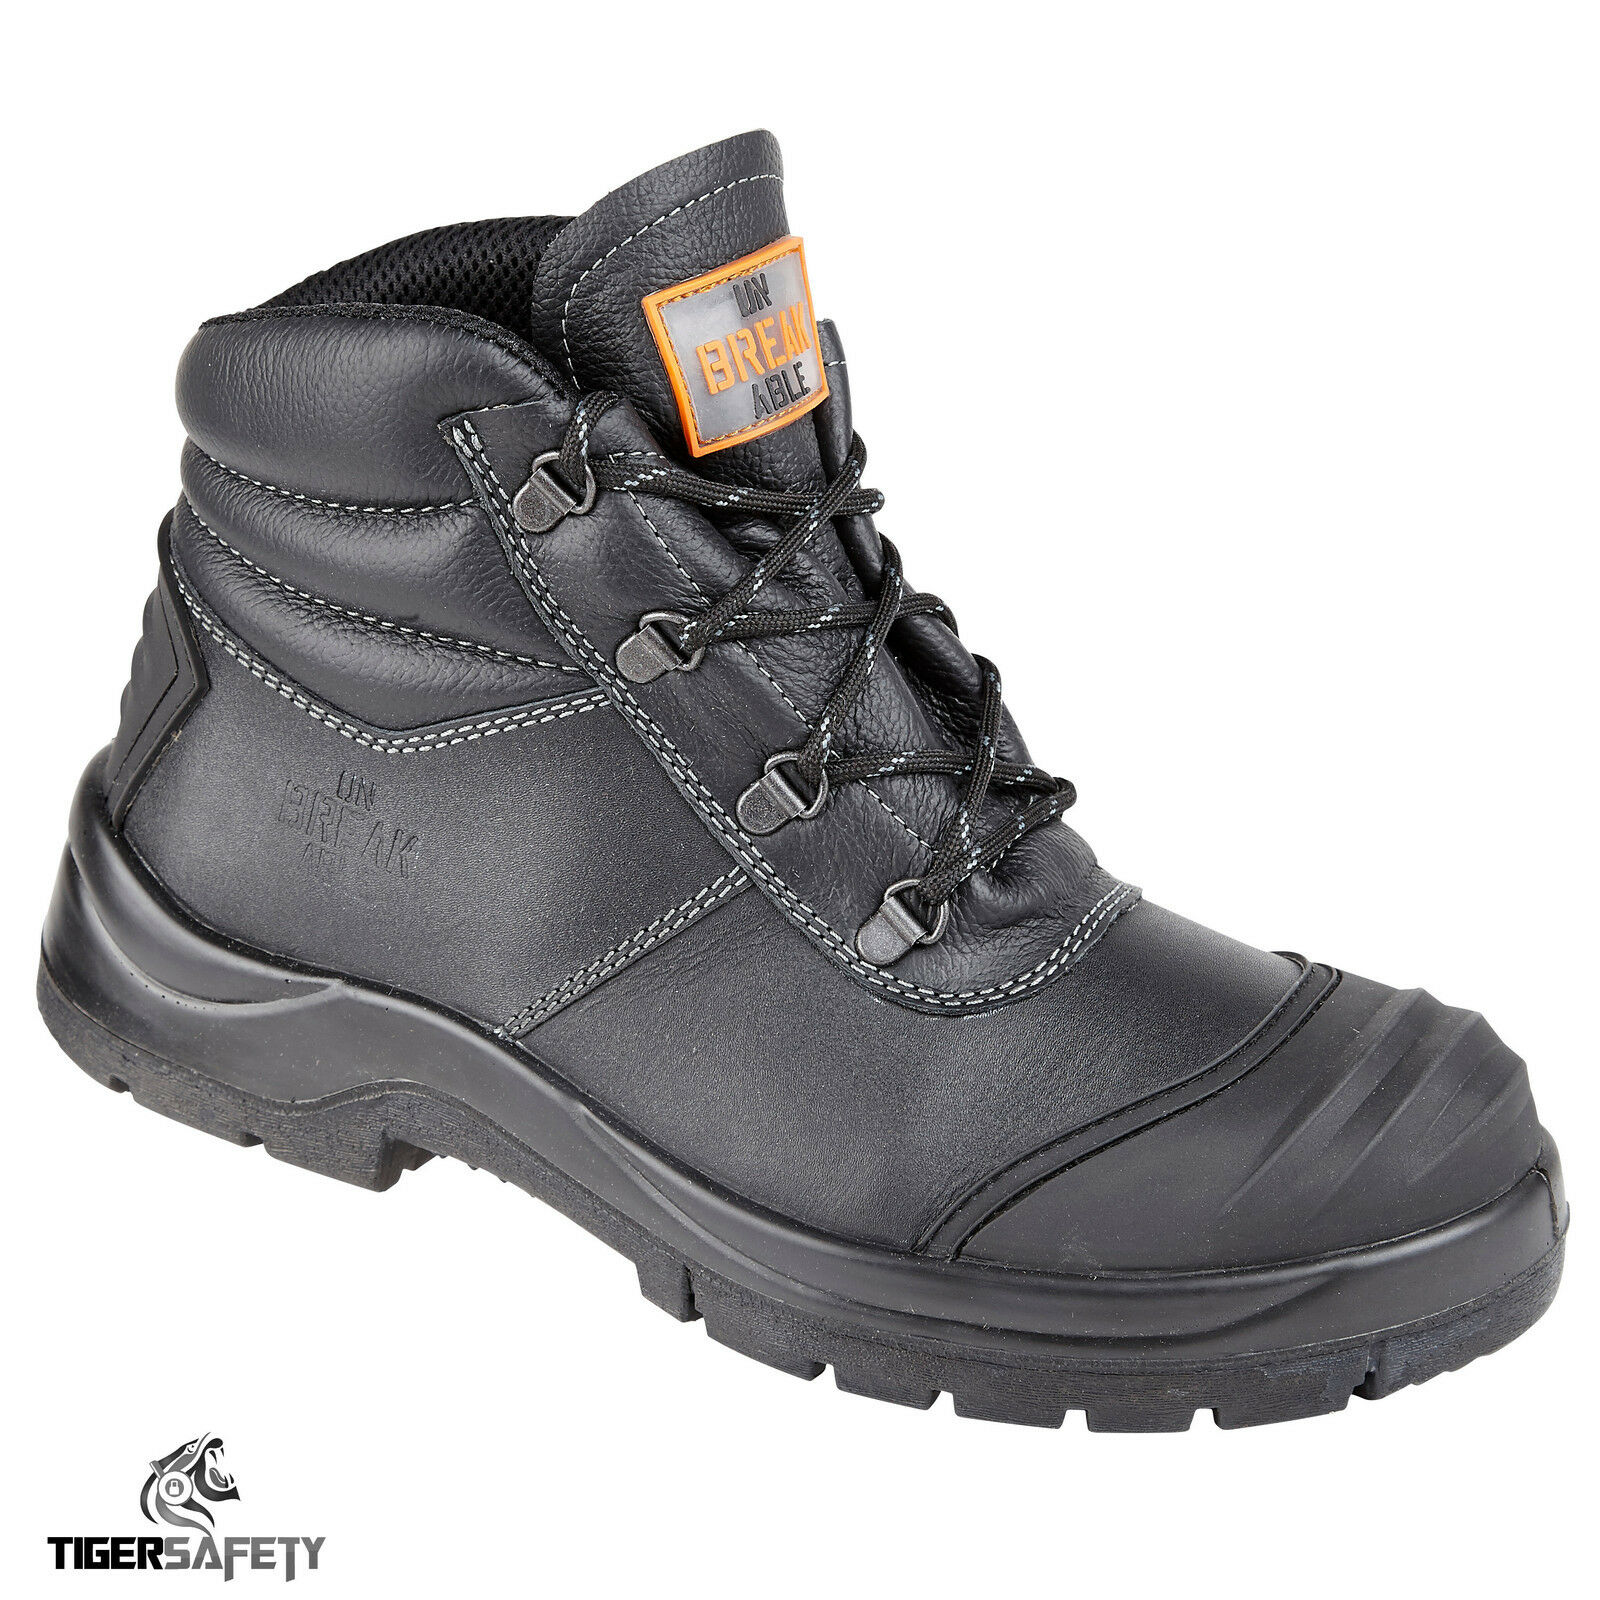 Unbreakable Renovator 8102 S3 SRC Black Safety Steel Toe Cap Chukka Safety Black Boots PPE 7679ac